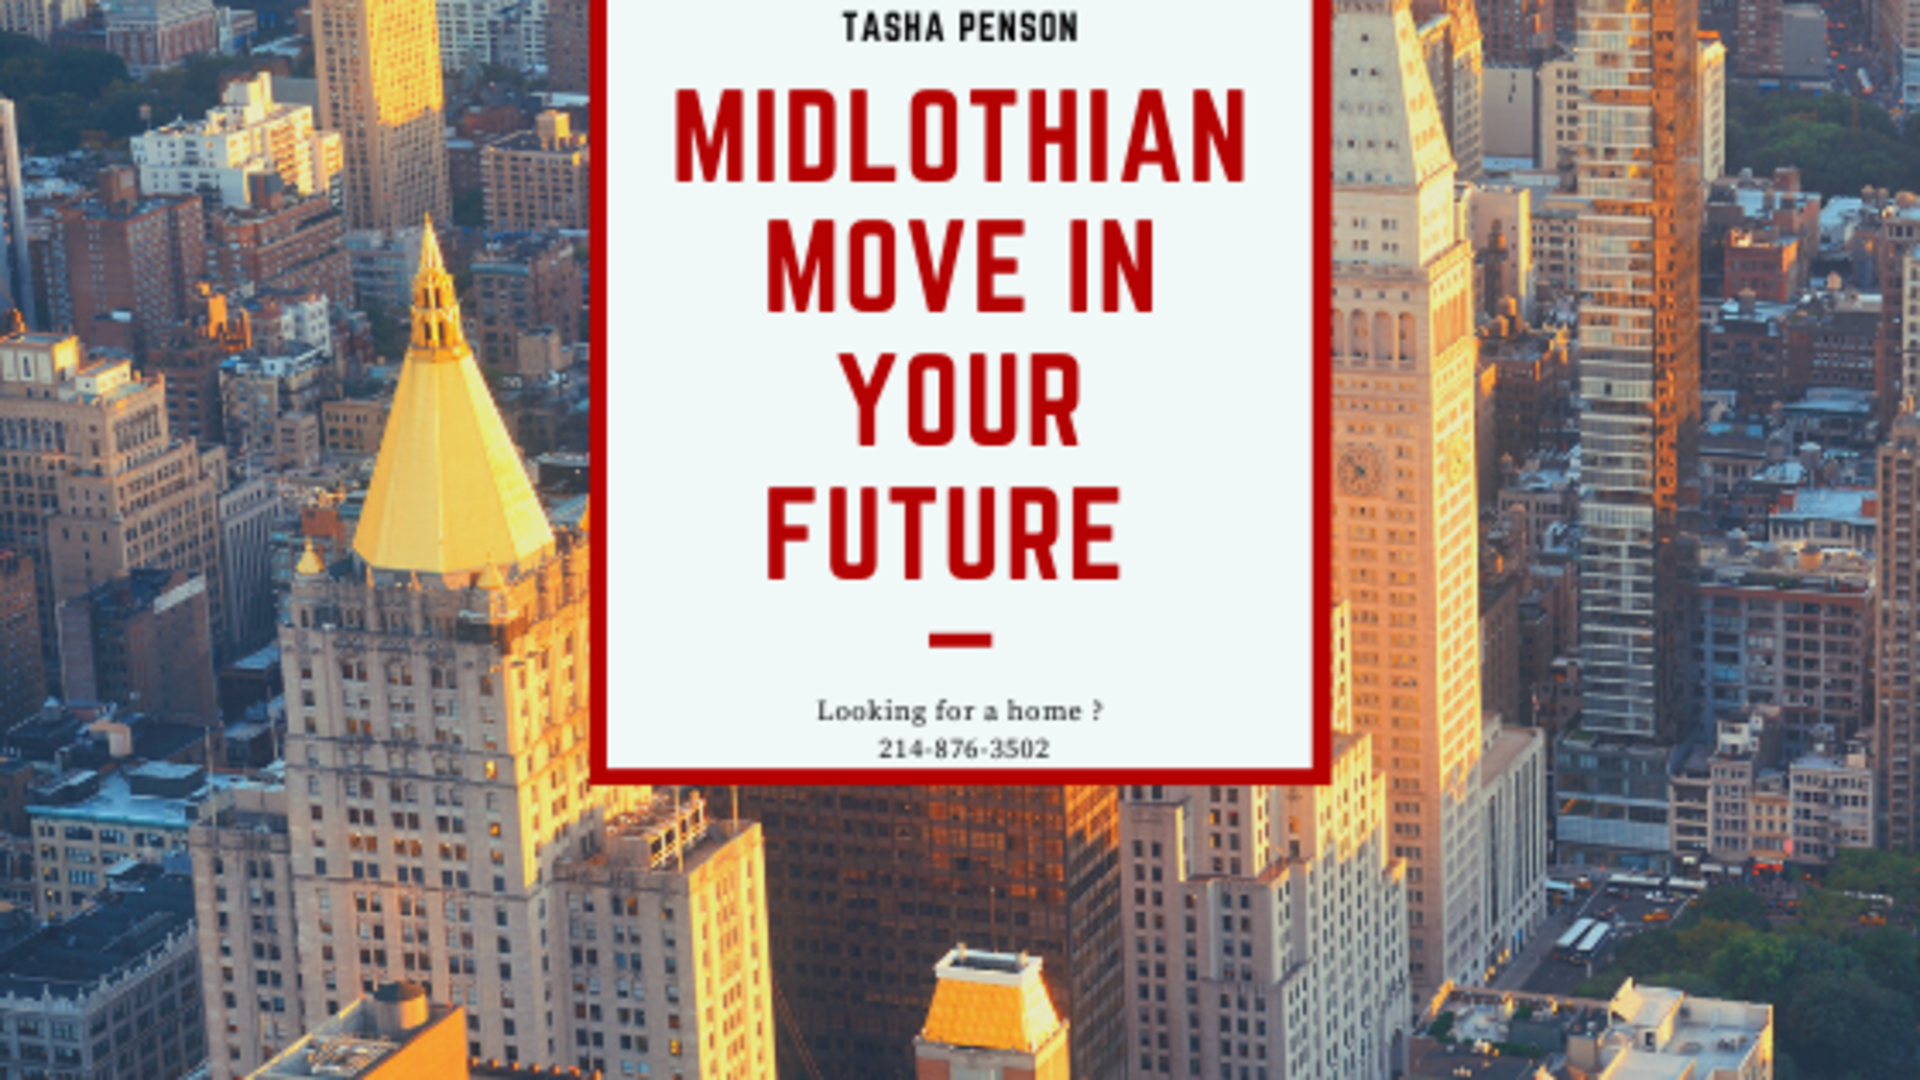 Midlothian Move in Your Future ?